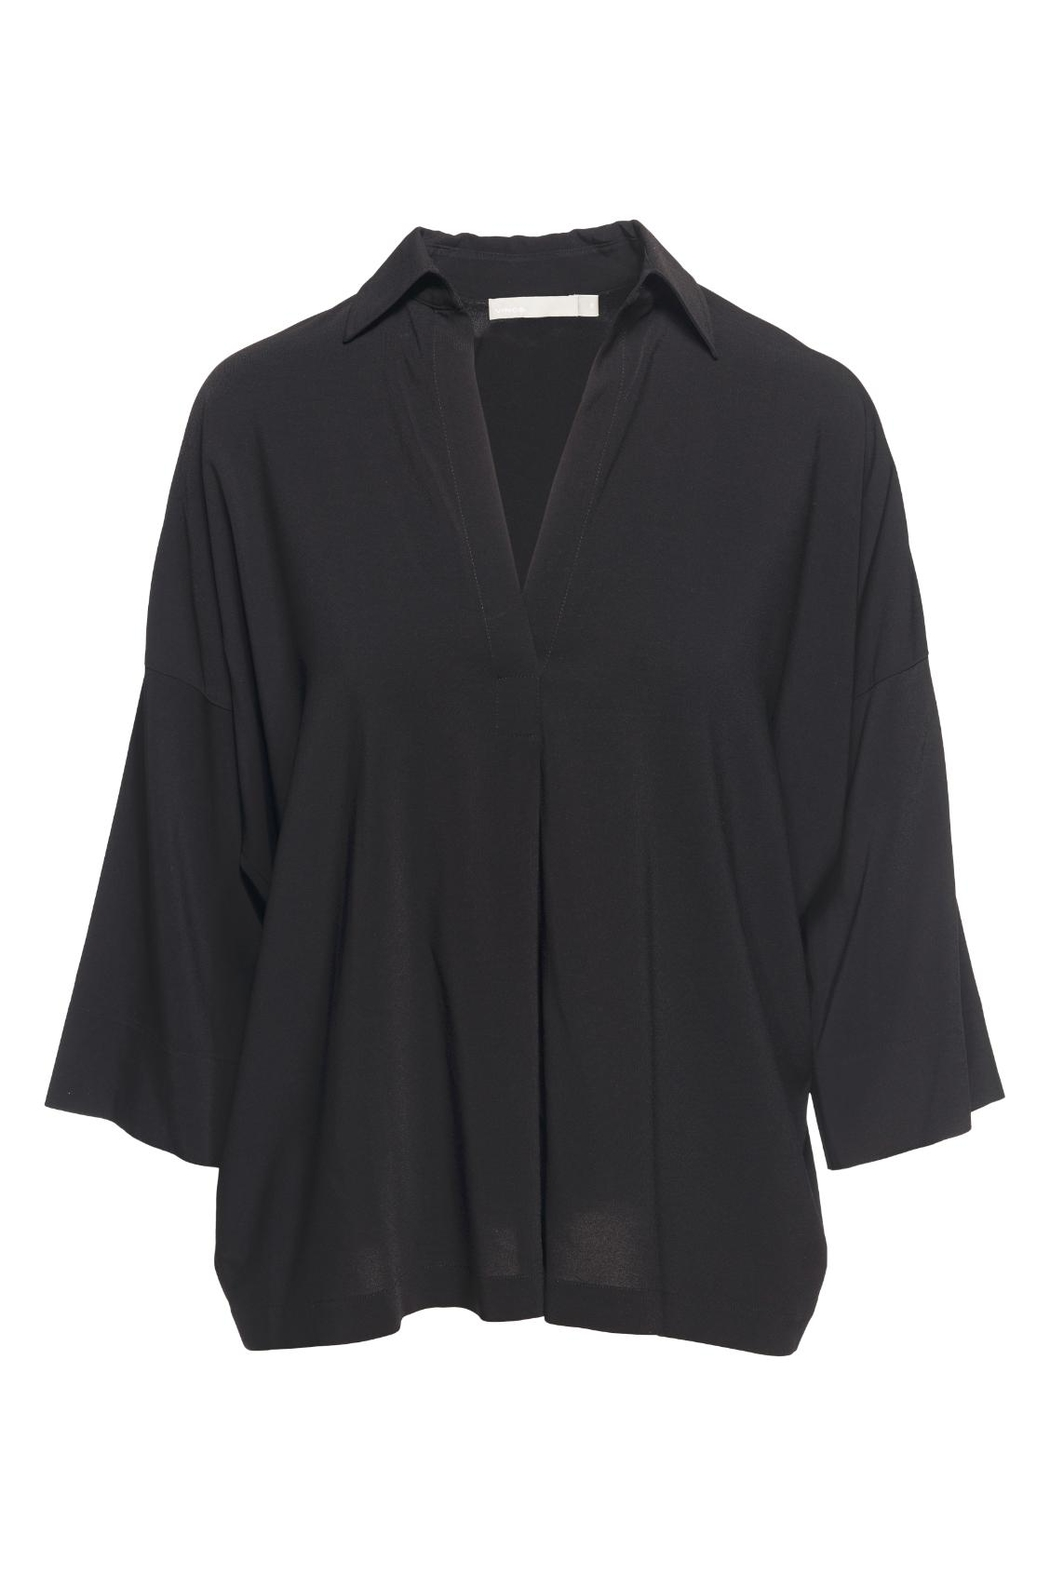 Vince Black Oversized Blouse - Main Image